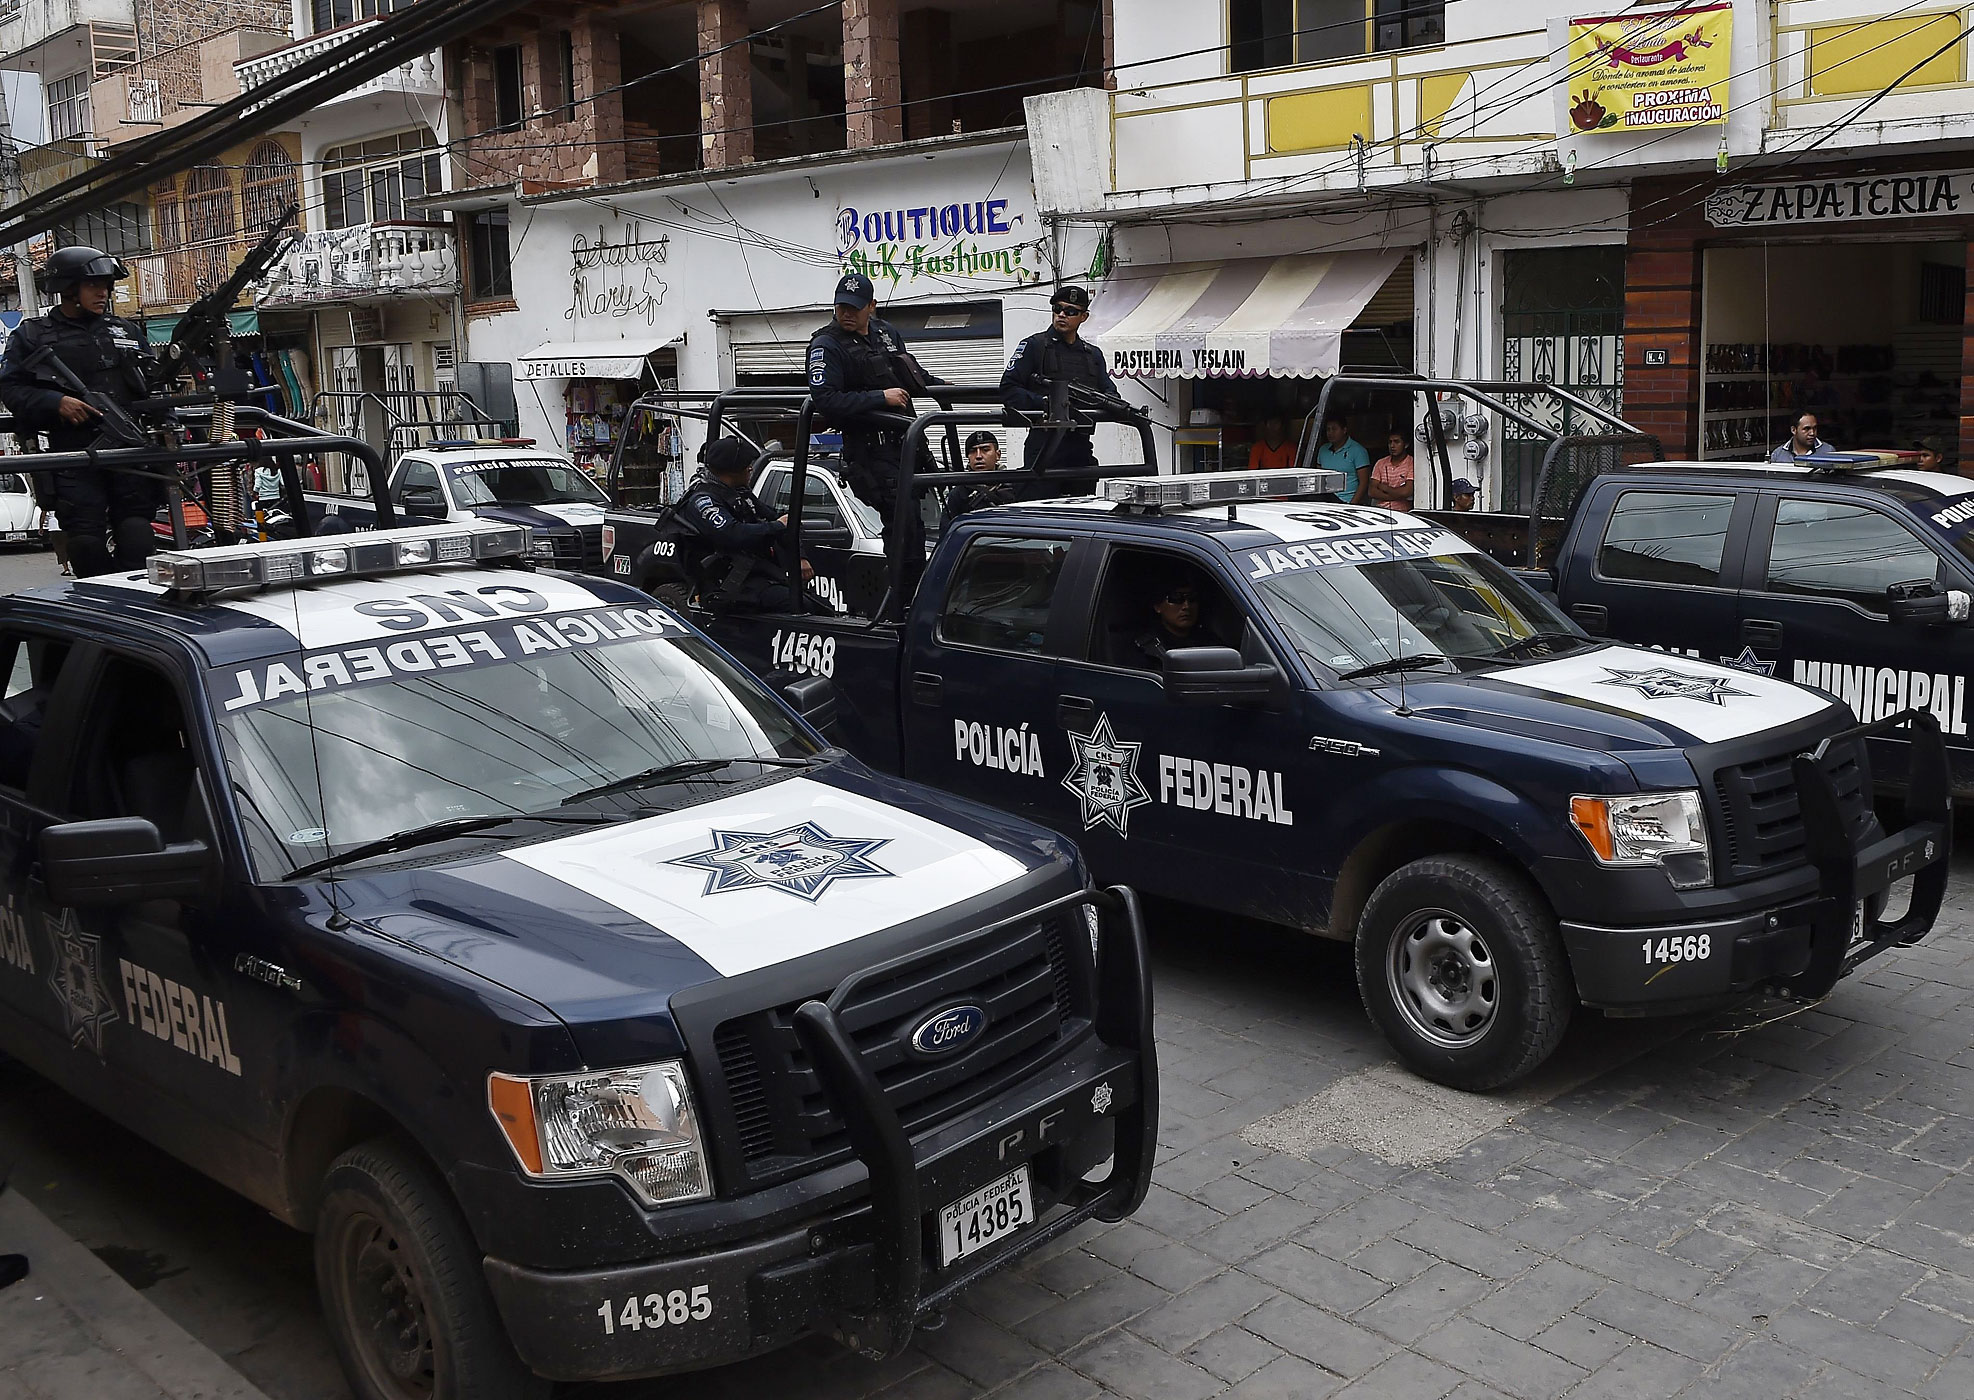 Members of the Mexican federal police are seen in a street in Teloloapan, Mexico, on Oct. 19, 2014